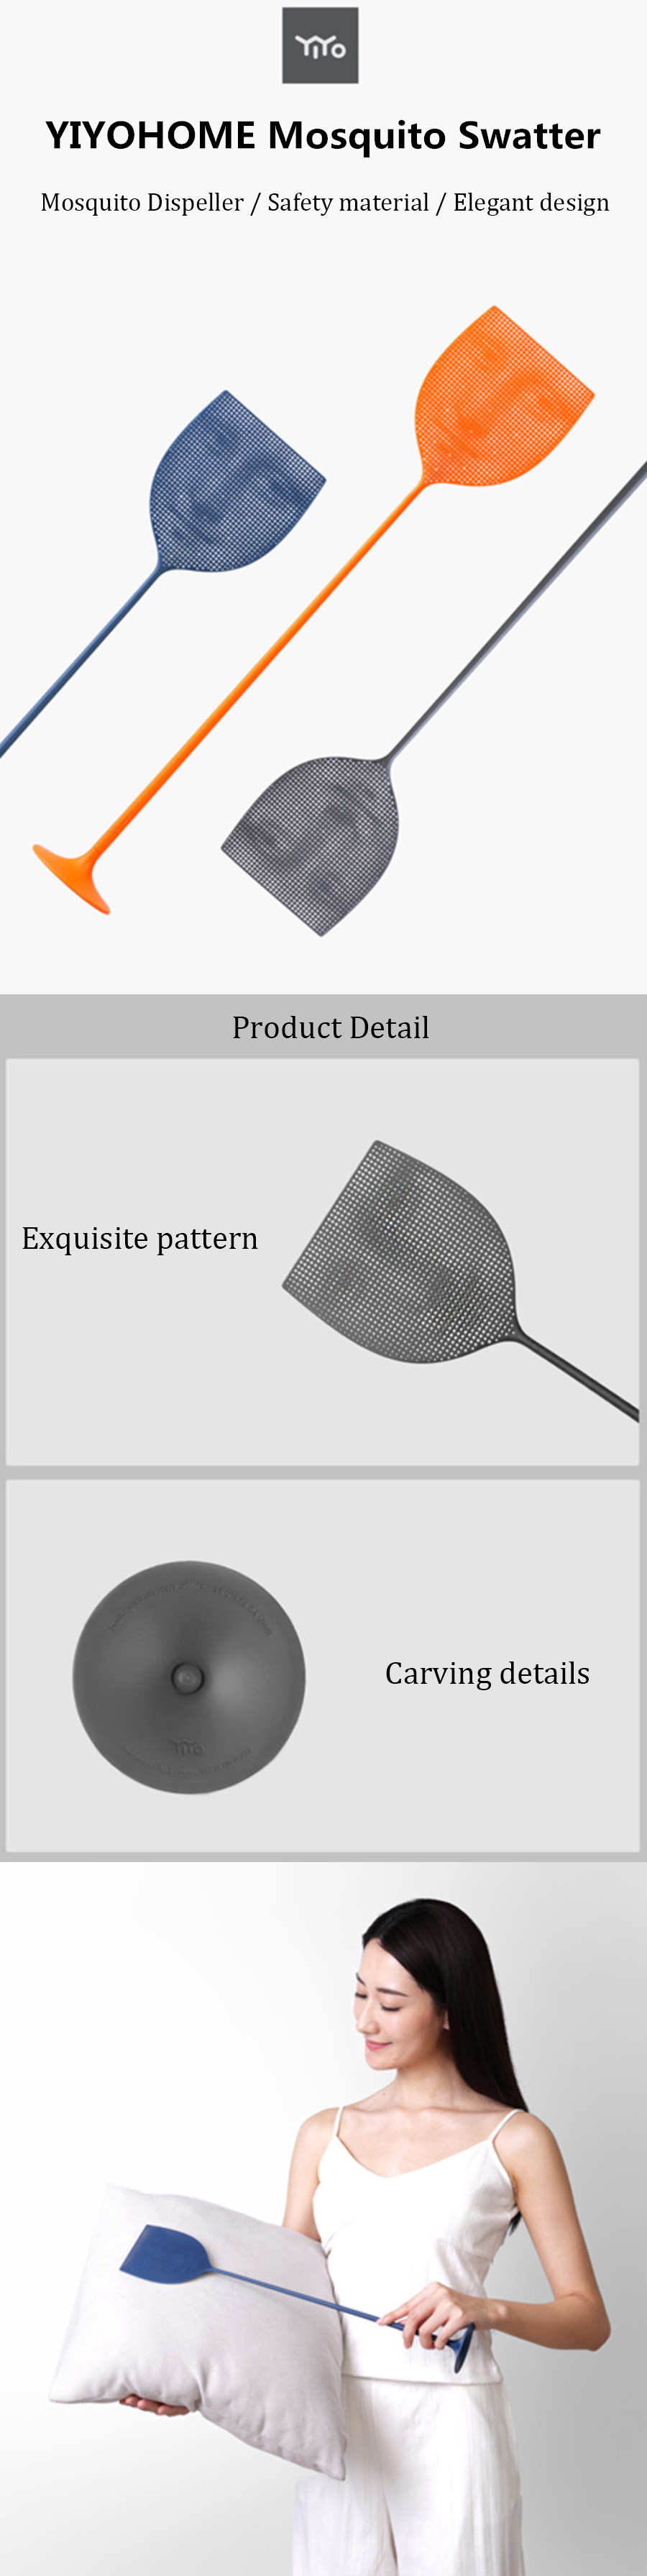 YIYOHOME Mosquito Swatter Mosquito Dispeller Repeller Bug Insect Flies Killer Racket From Xiaomi youpin